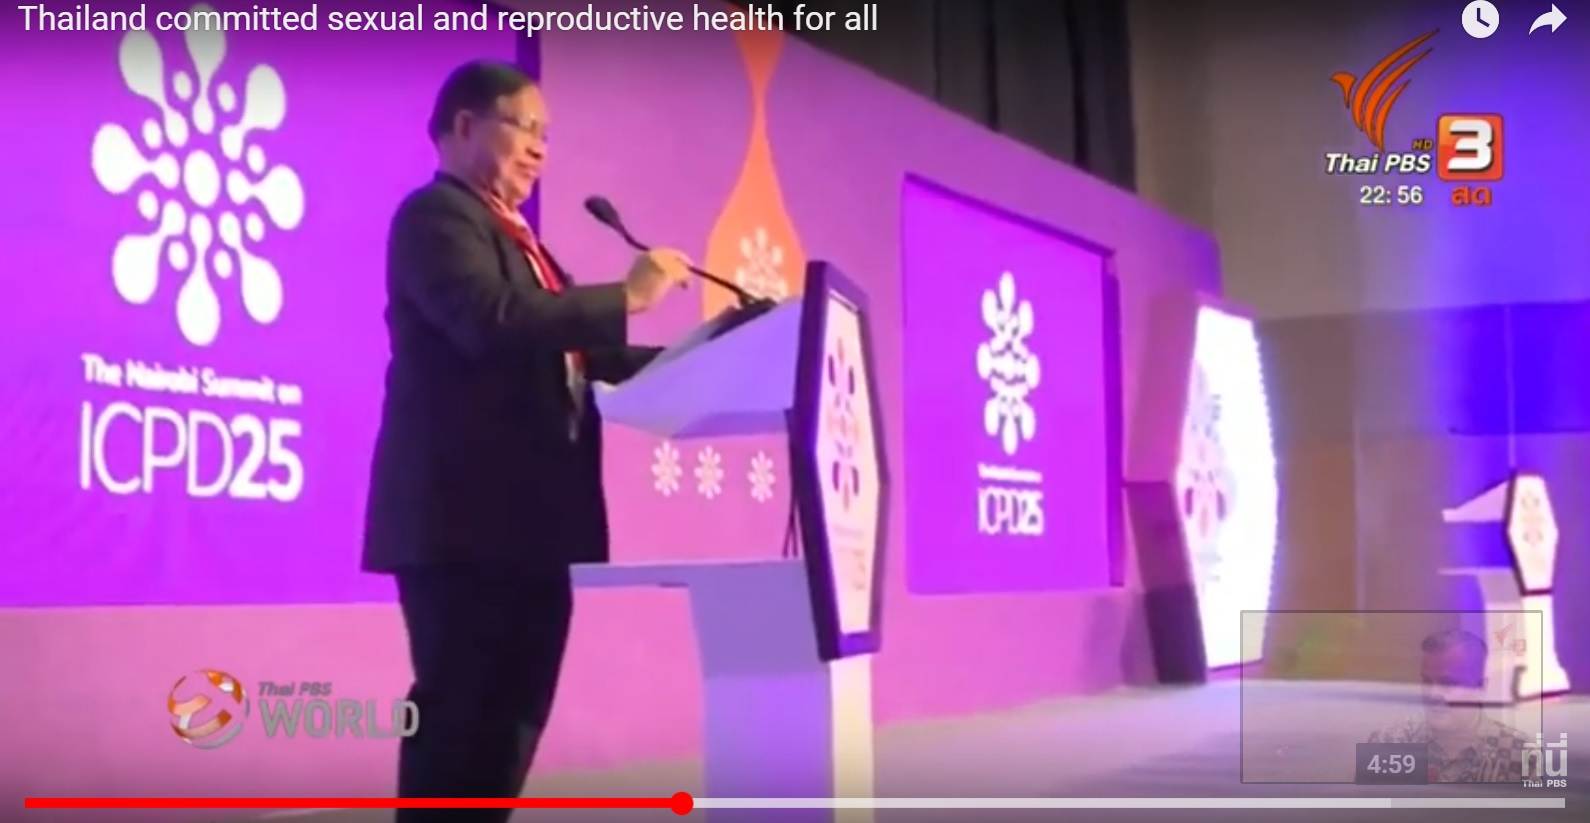 Nairobi Summit: Thailand committed sexual and reproductive health for all